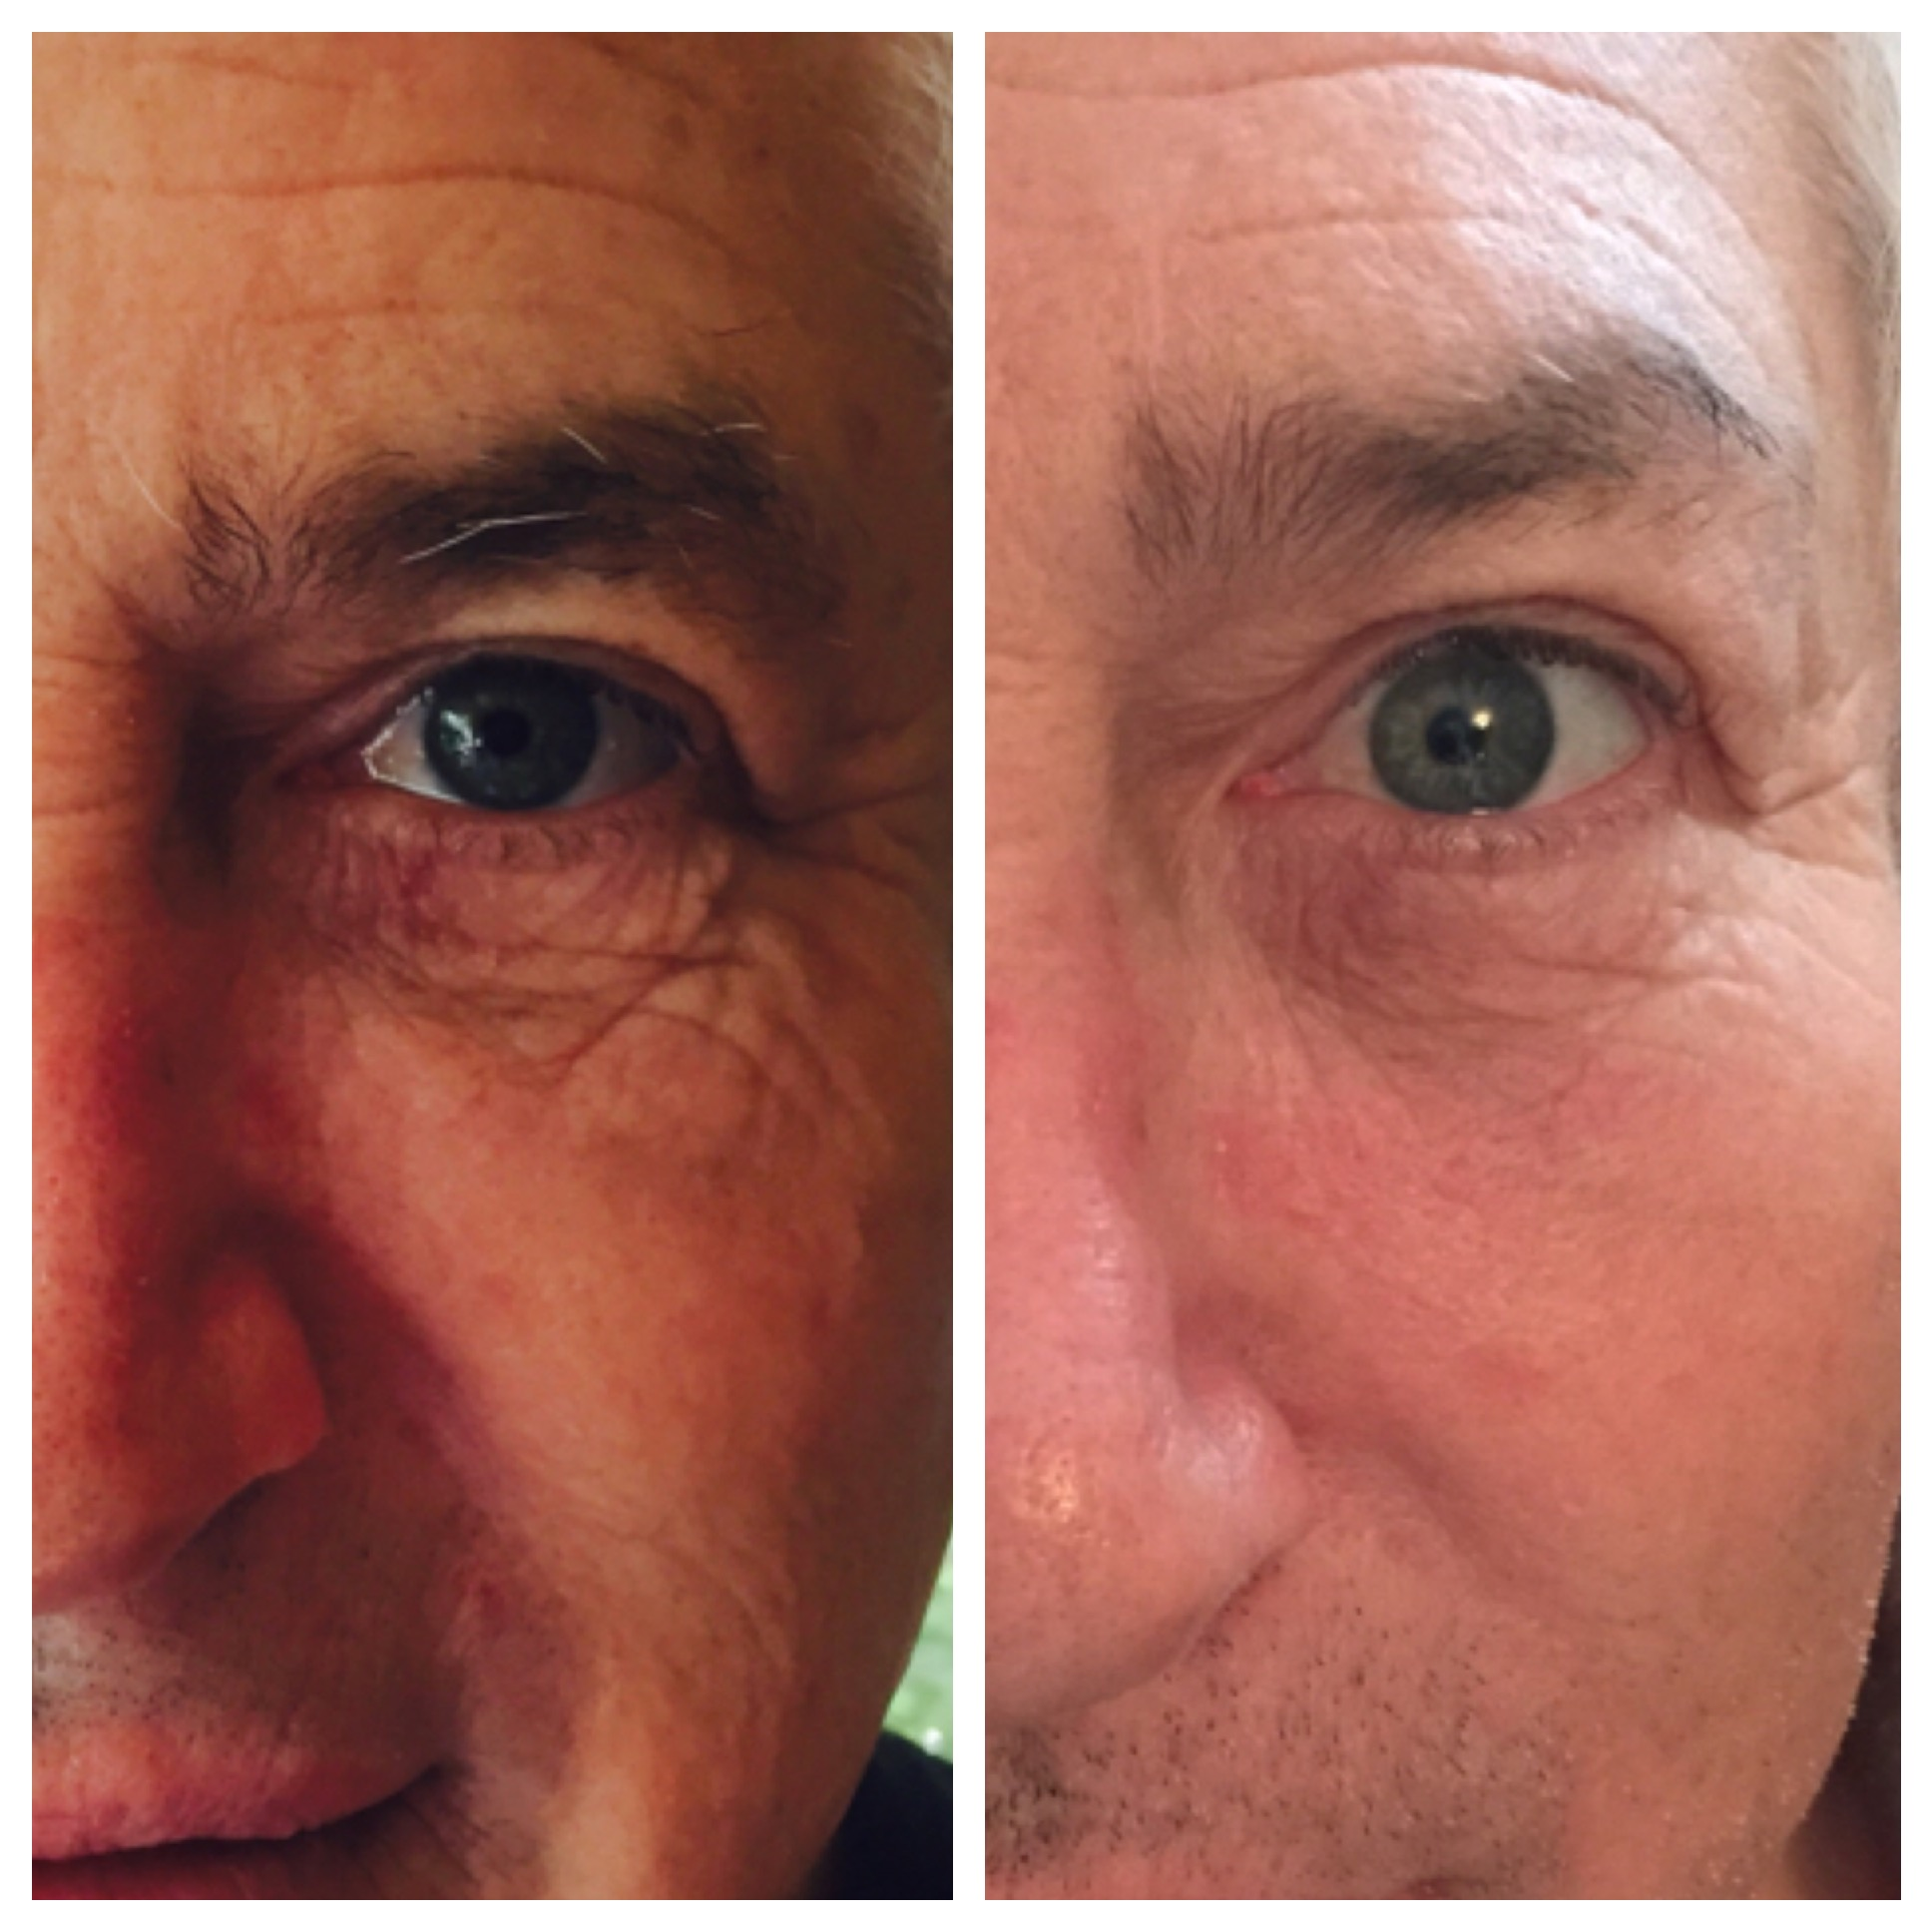 Tone/Texture improved and fine lines filled using Perfect Derma Peel (Intense Peel)